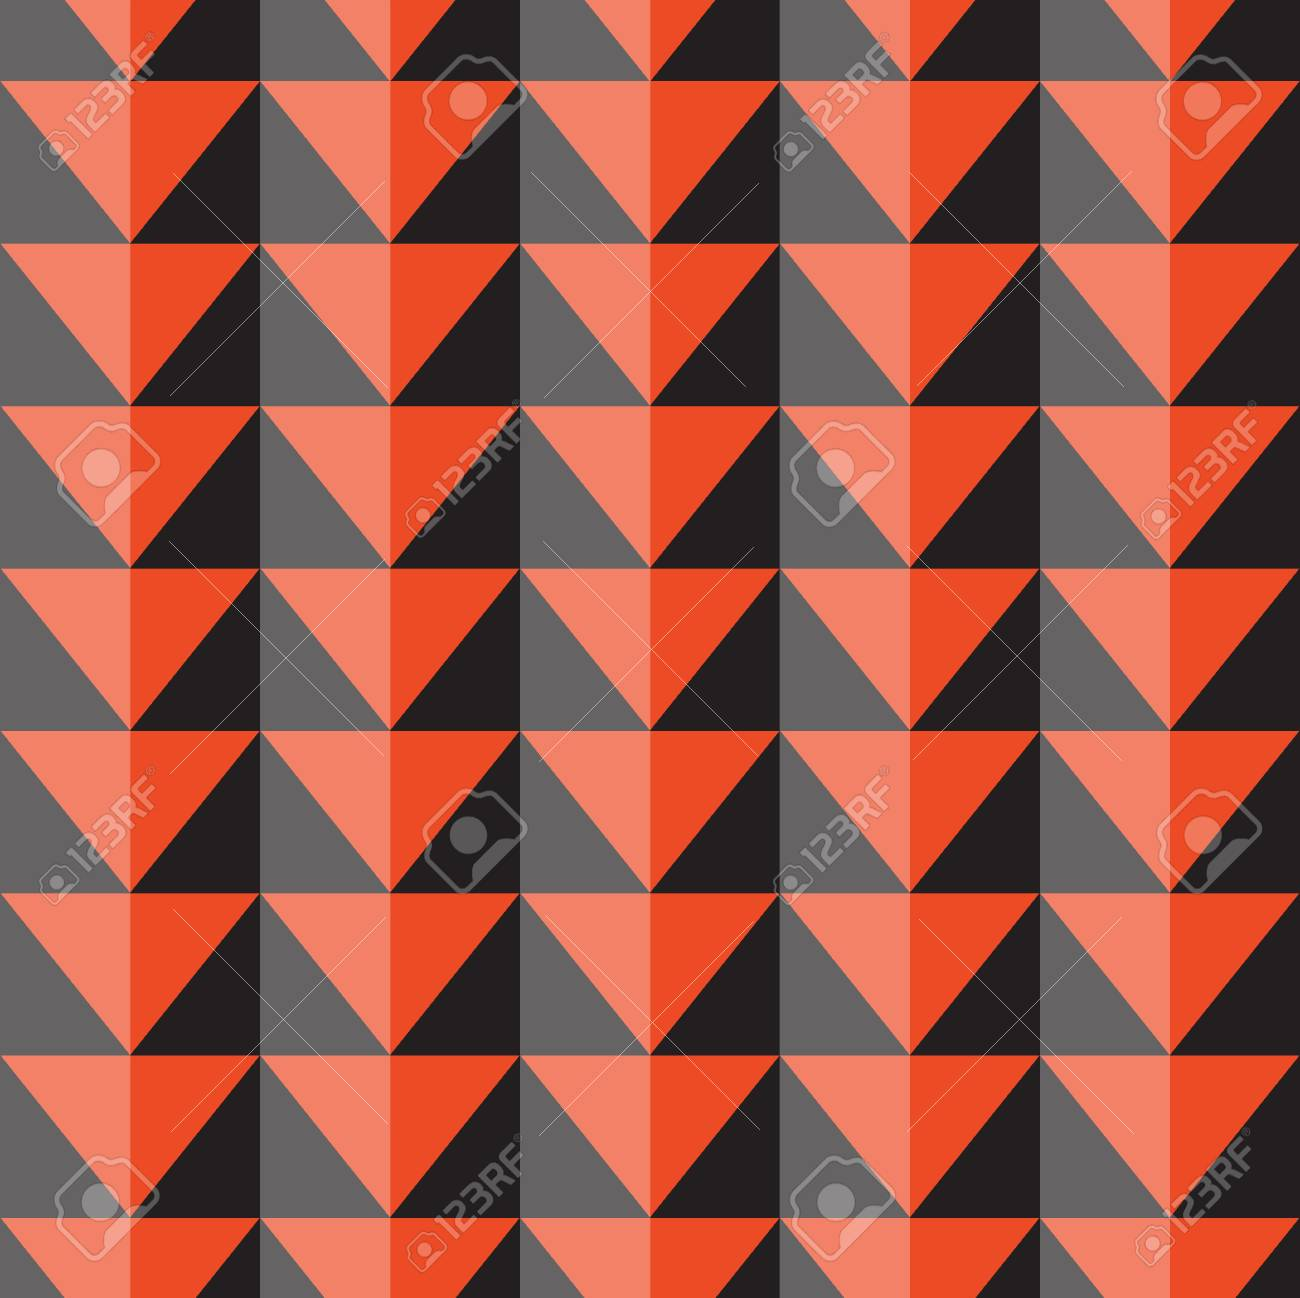 70668631 seamless vector pattern with orange and gray triangles wallpaper pattern fills web page background s